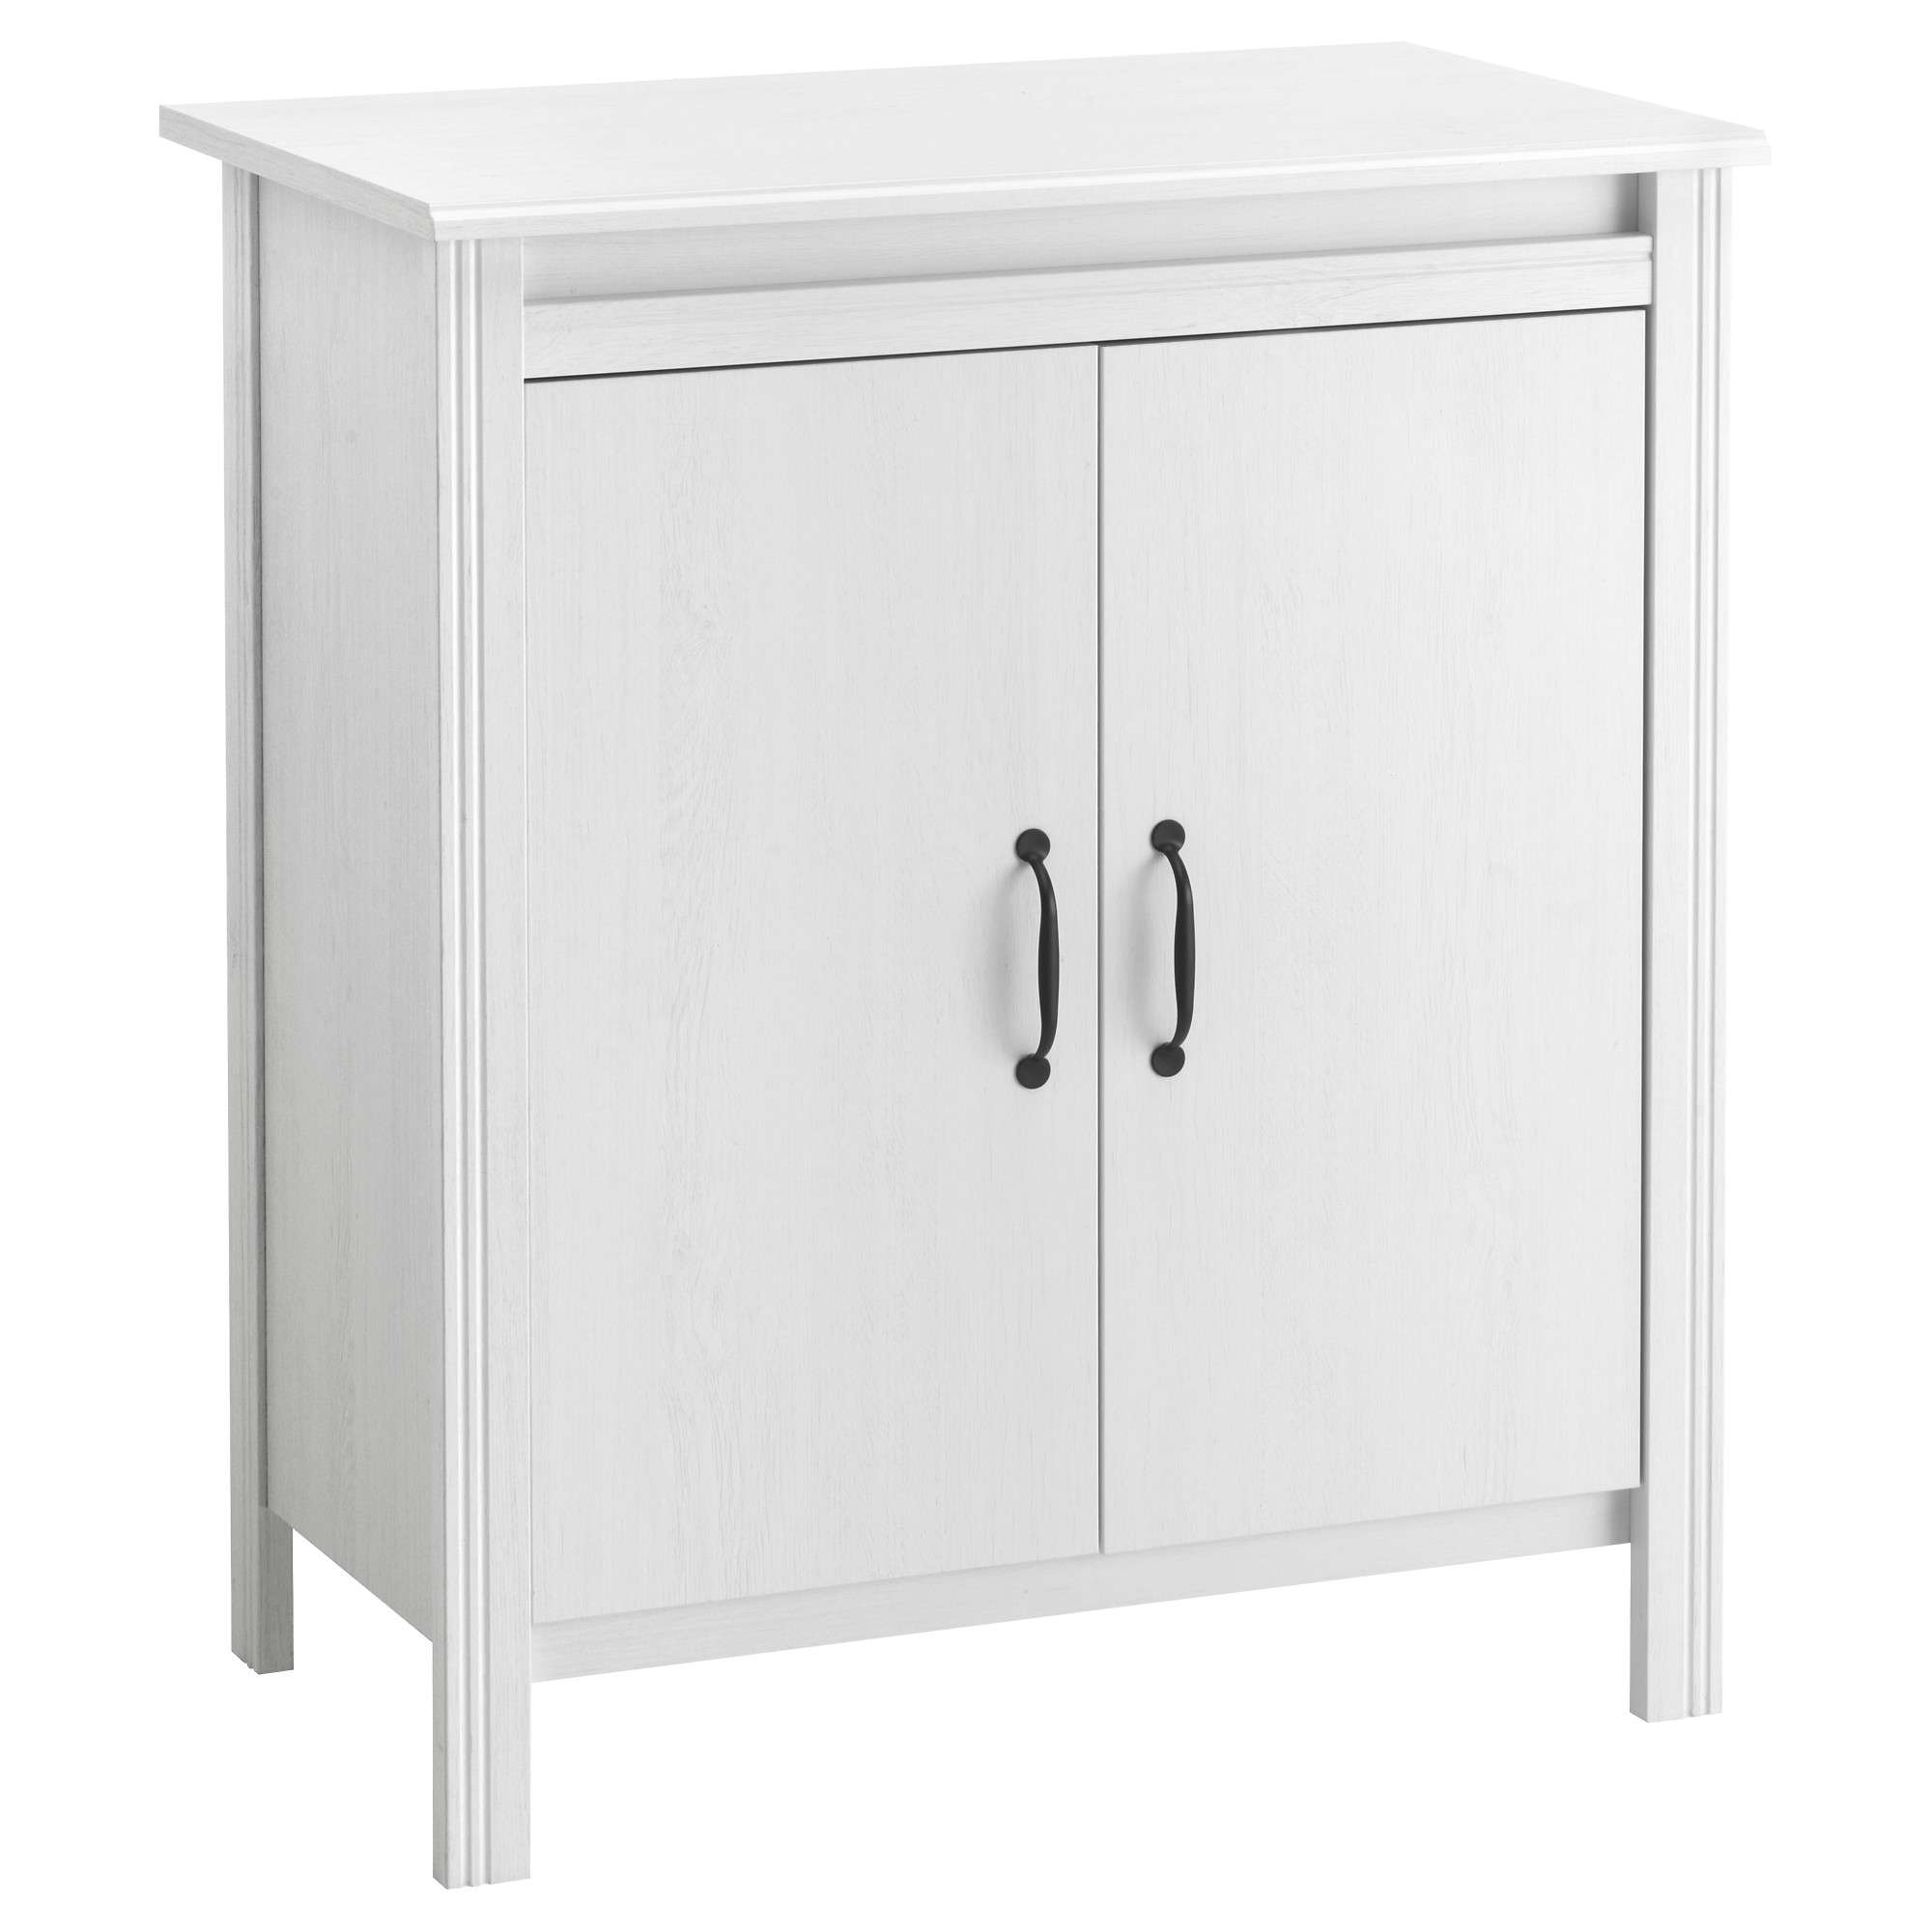 Storage Cabinets & Storage Cupboards | Ikea In White Gloss Ikea Sideboards (View 19 of 20)